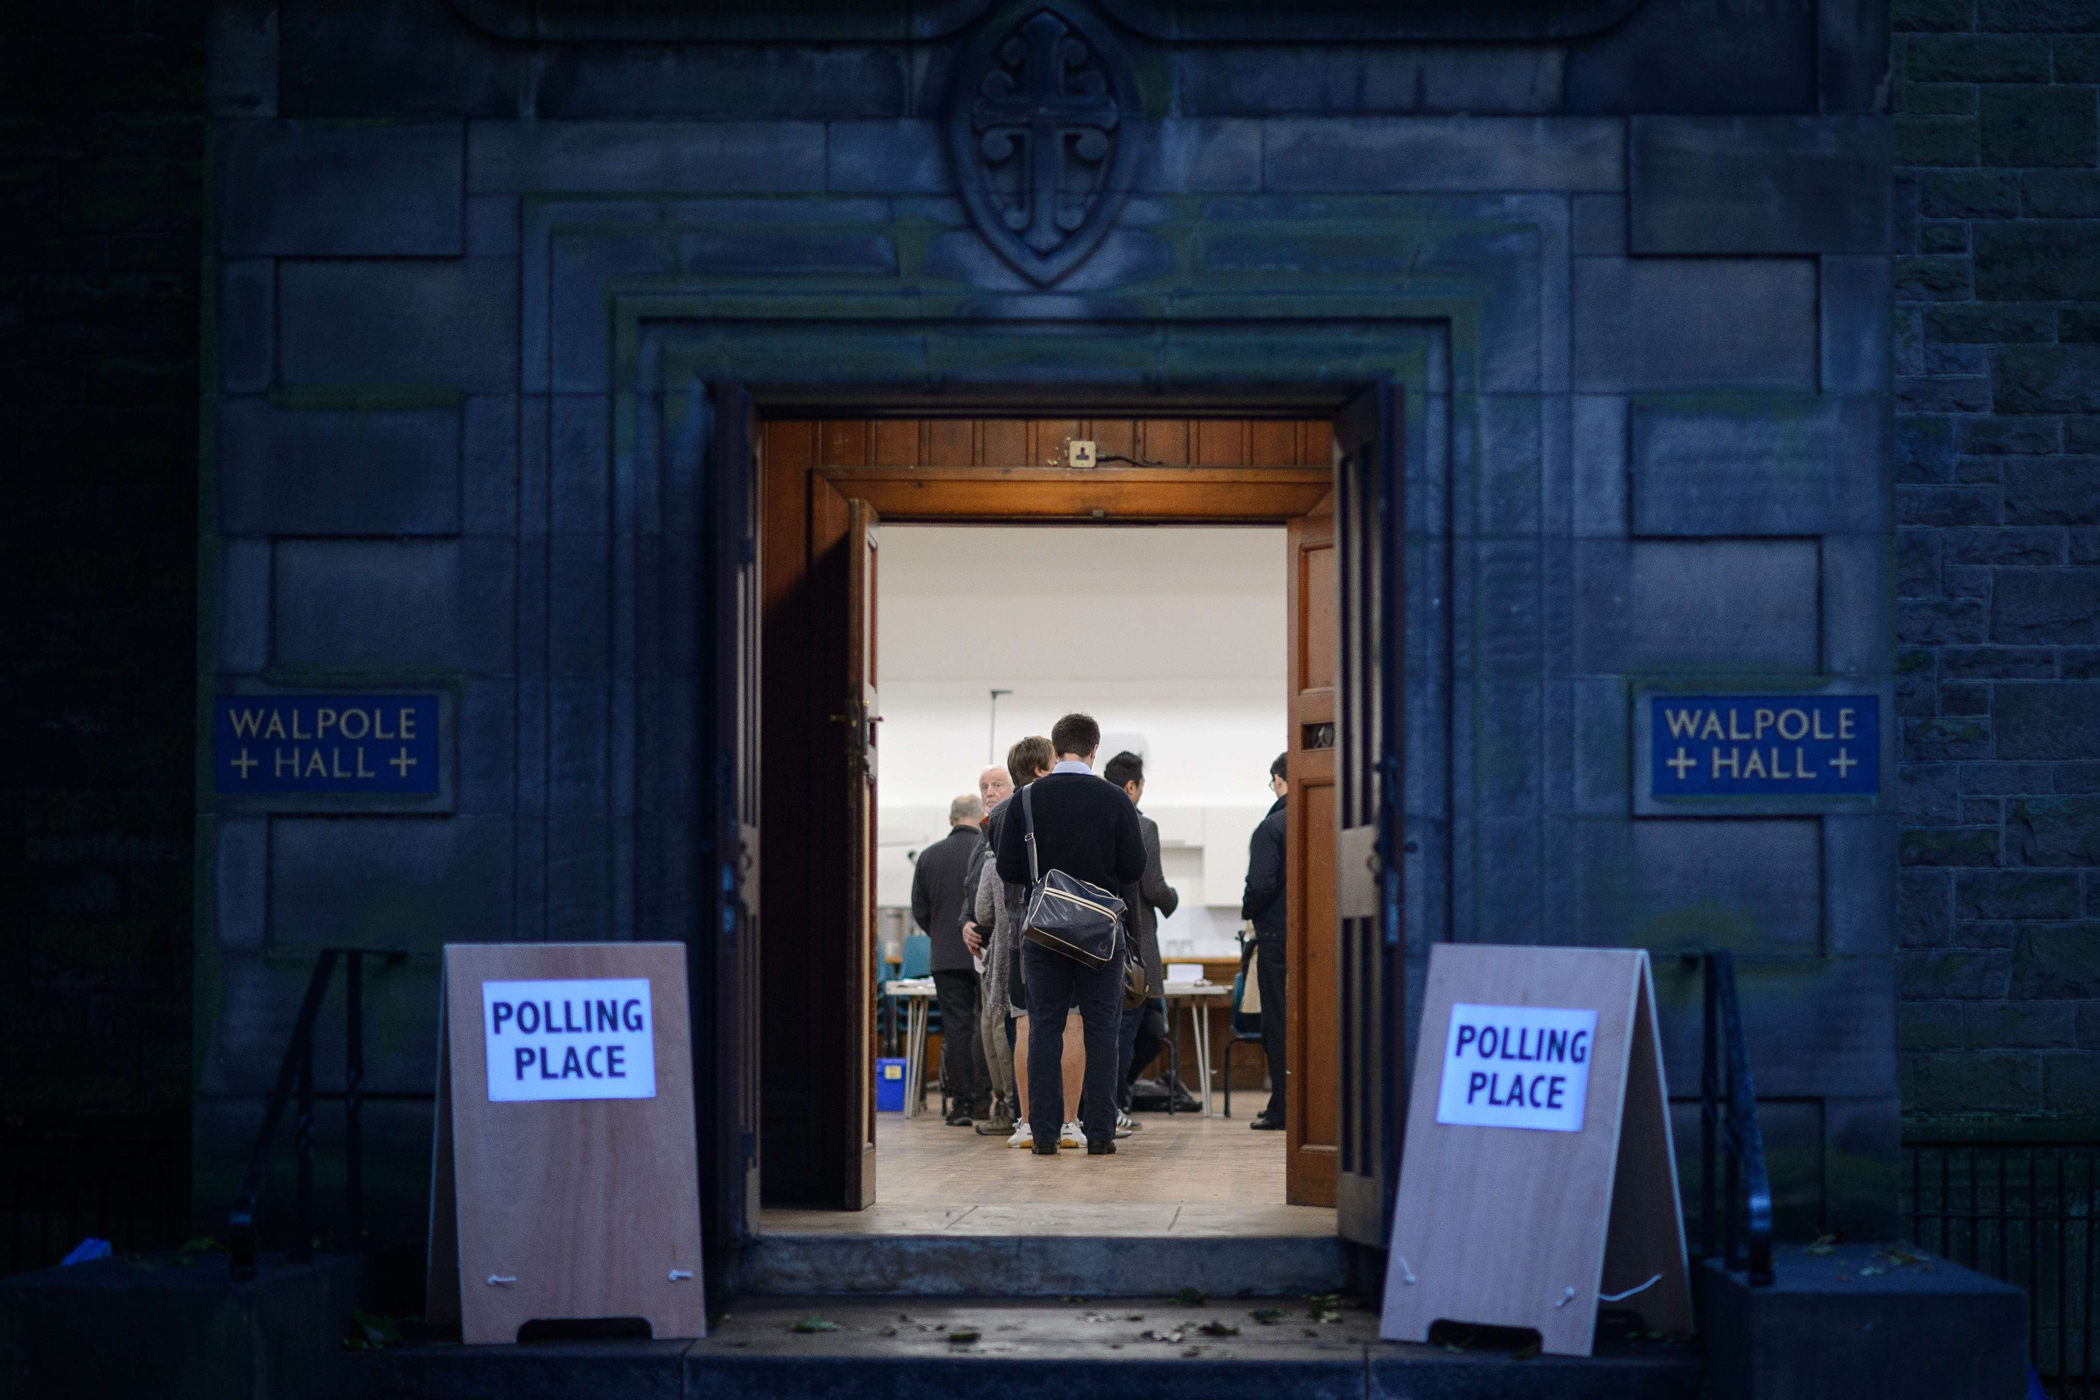 People wait to cast their votes inside a polling station in Edinburgh, Scotland, on Sept. 18, 2014, during a referendum on Scotland's independence.